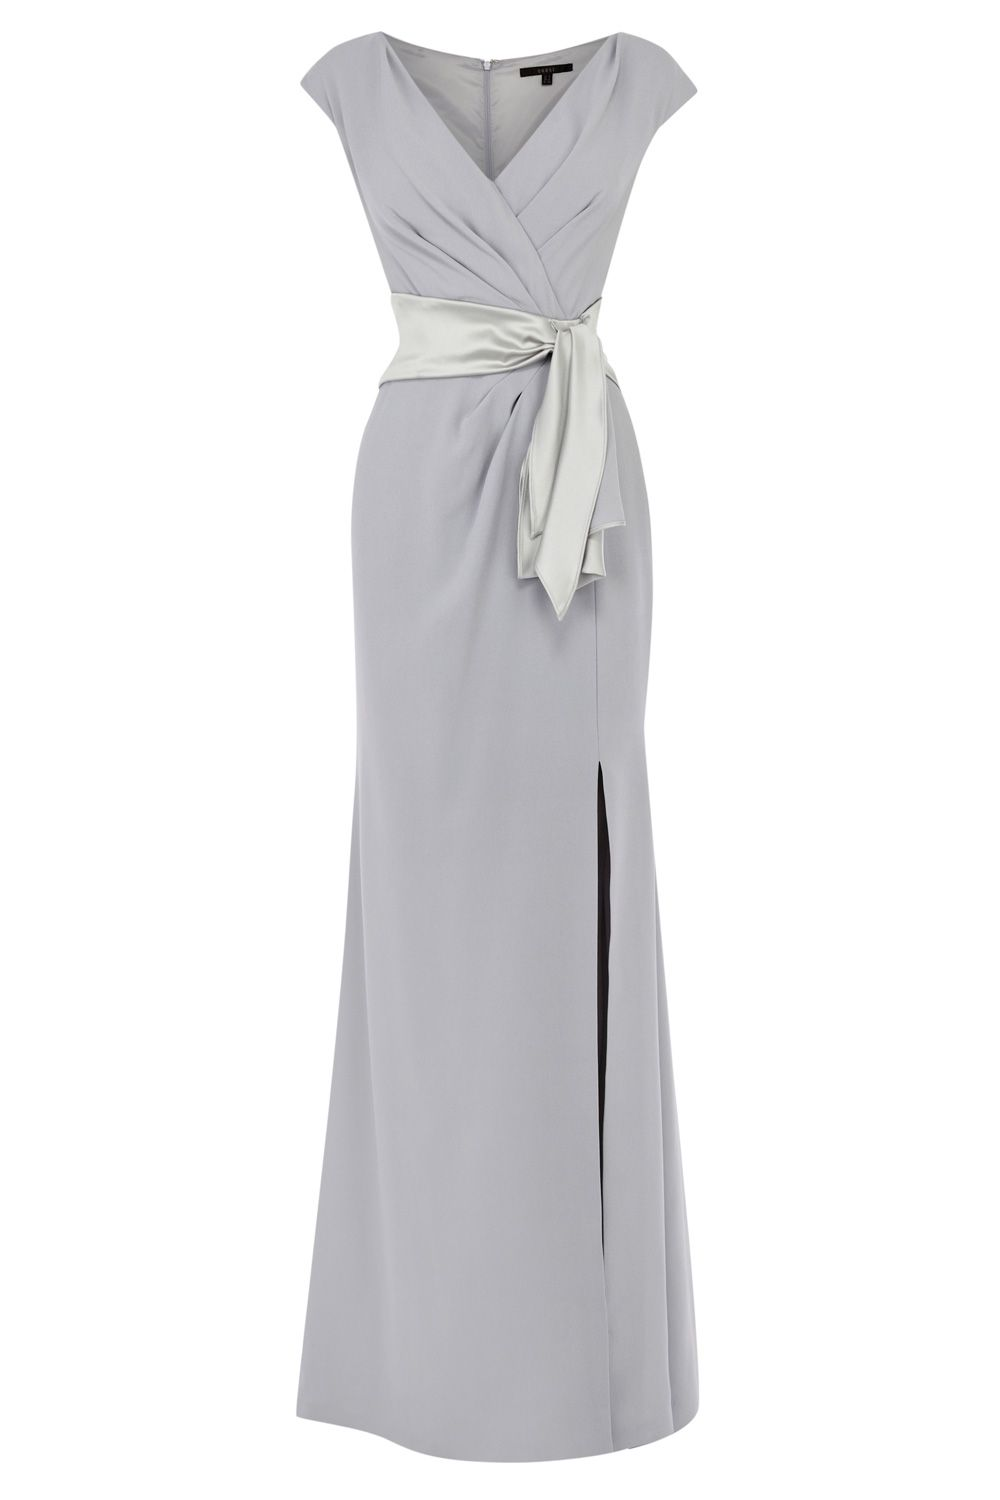 A beautifully graceful gown tailored with a split skirt making for a confident look. The Kate Sleeved Maxi Dress features a chic wrap-style bust cinched with a luxurious adjustable waist tie. The pretty three quarter sleeves provide just the right amount of arm coverage. Tailored to cinch you in at the waist, and skim over your hips whilst lengthening your silhouette. Dress length from underarm to hem is 137cm/54 inches and is fully lined for effortless wearing and ease of movement.